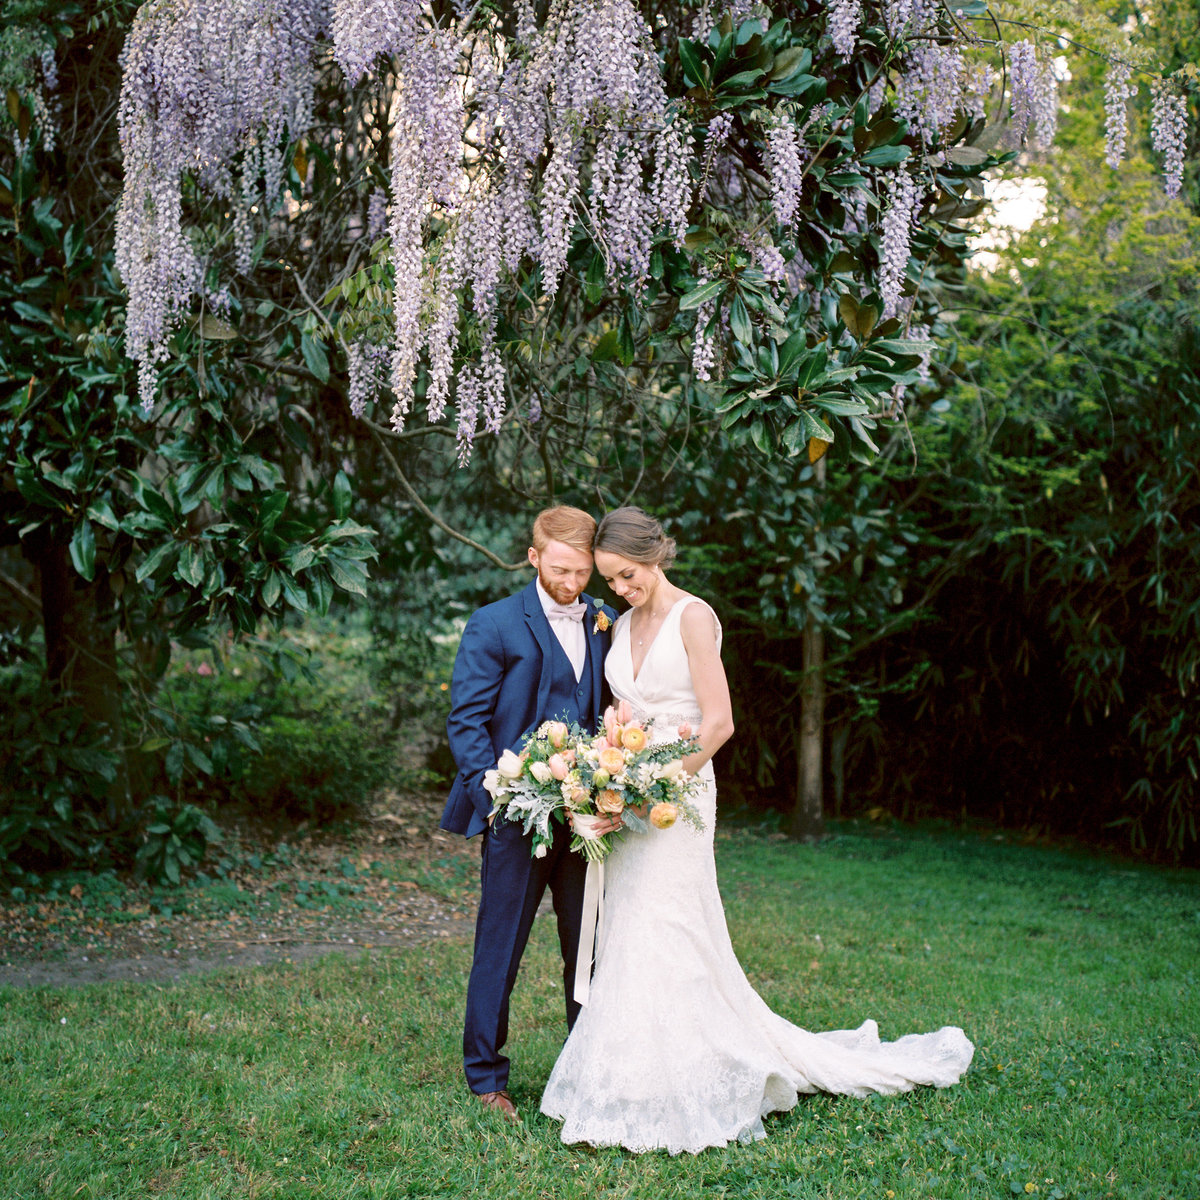 charleston-wedding-venues-magnolia-plantation-philip-casey-photography-068